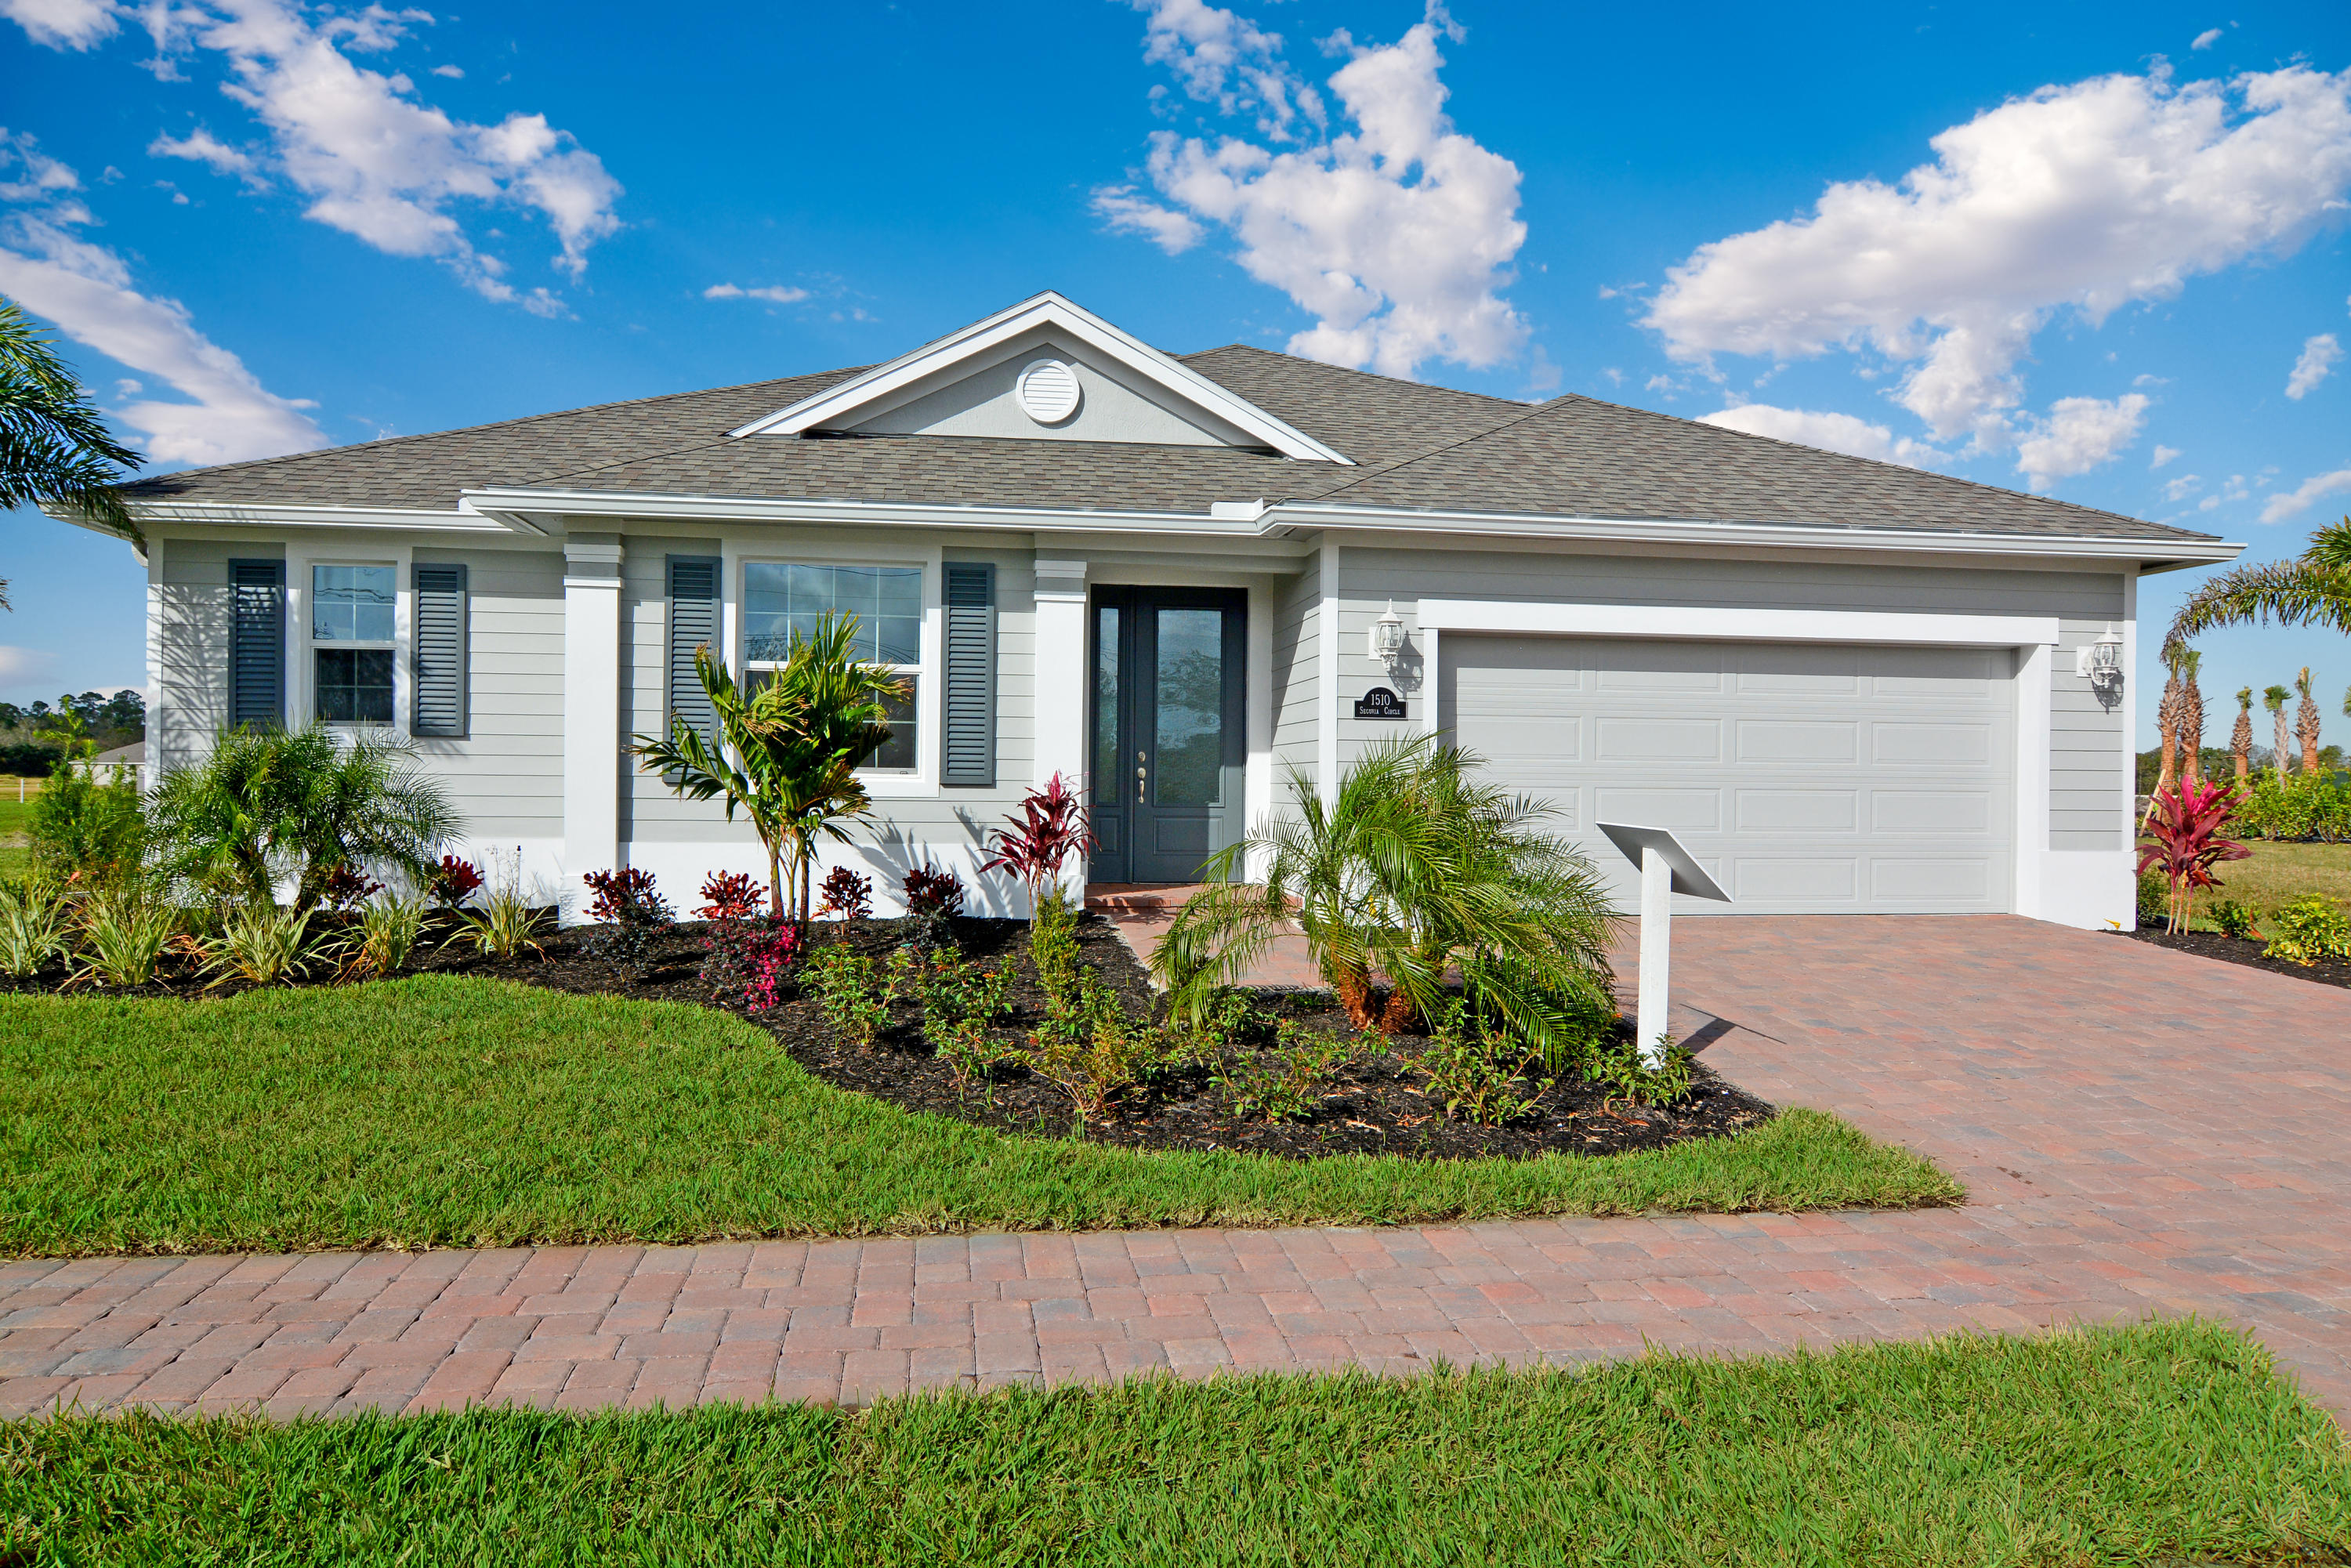 Photo of 5822 Segovia Place, Vero Beach, FL 32966